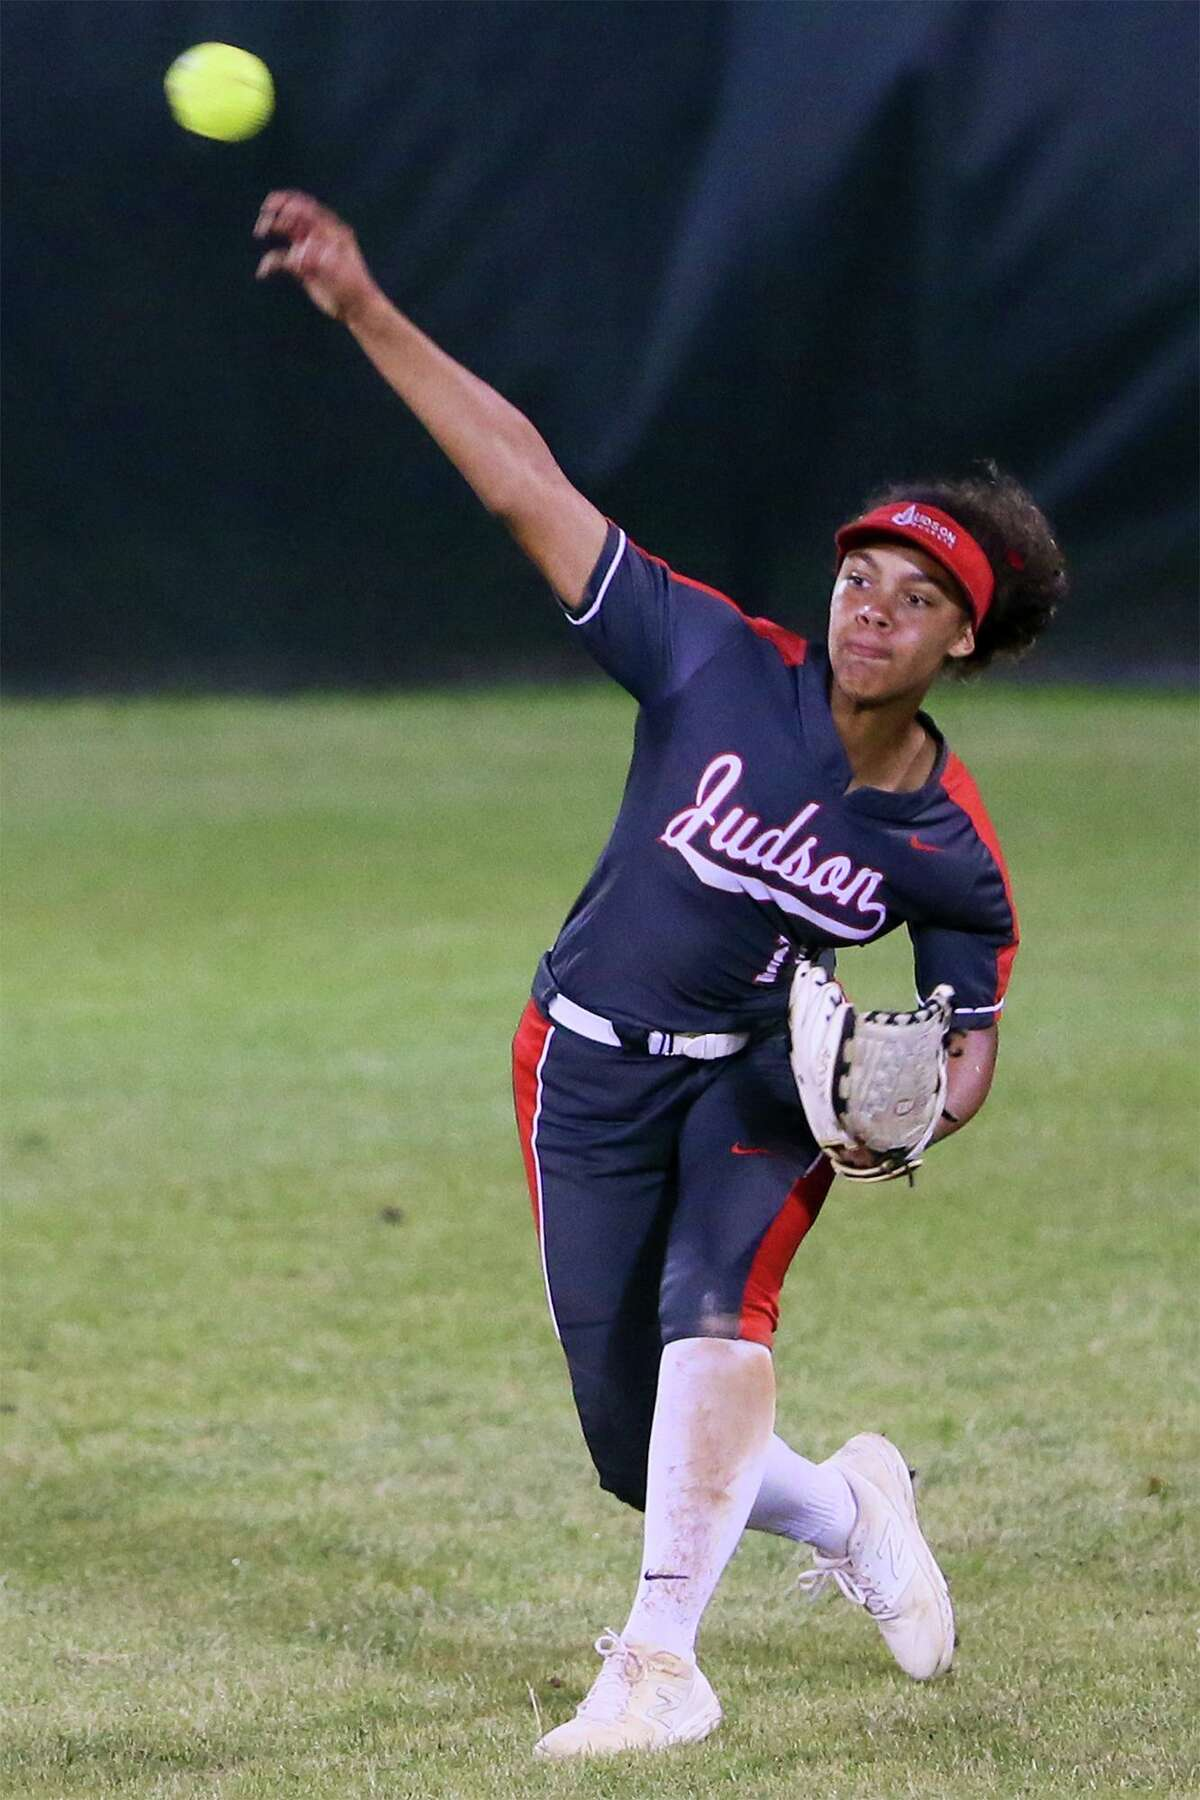 Judson's Keely Williams makes a play from center field during the sixth inning of their UIL Class 6A second-round high school softball playoff game with Johnson at Northside ISD softball field No. 2 on Thursday, May 2, 2019. Judson advanced to the next round with a 4-2 victory over Johnson in the one-game series.